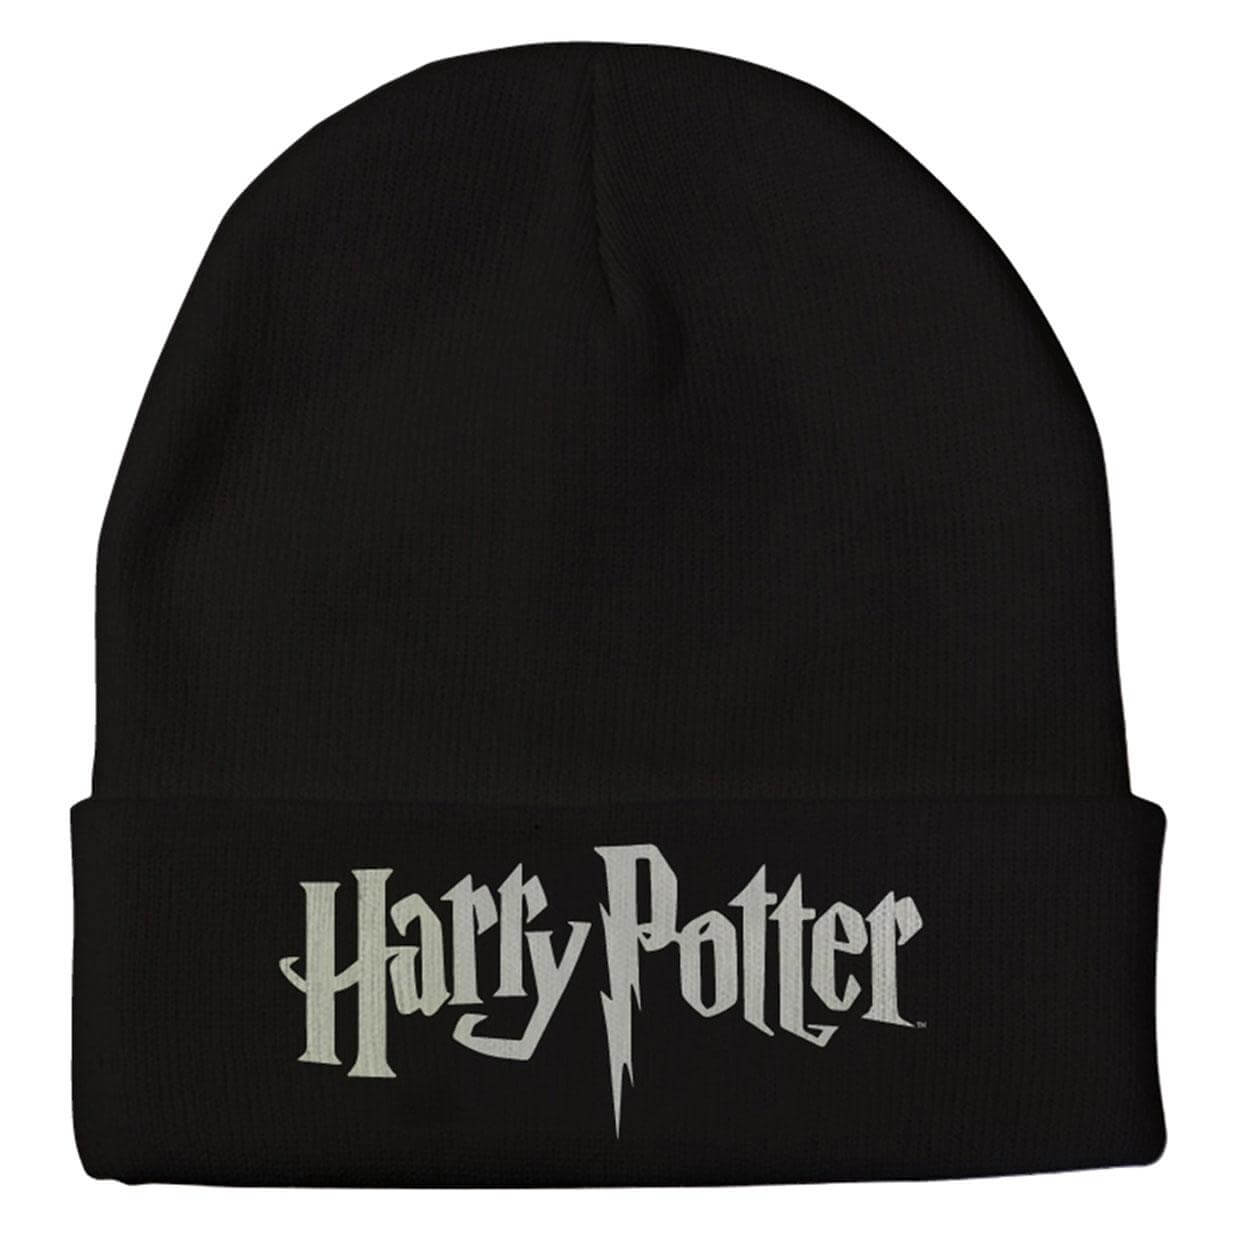 bonnet harry potter noir logo boutique sorcier